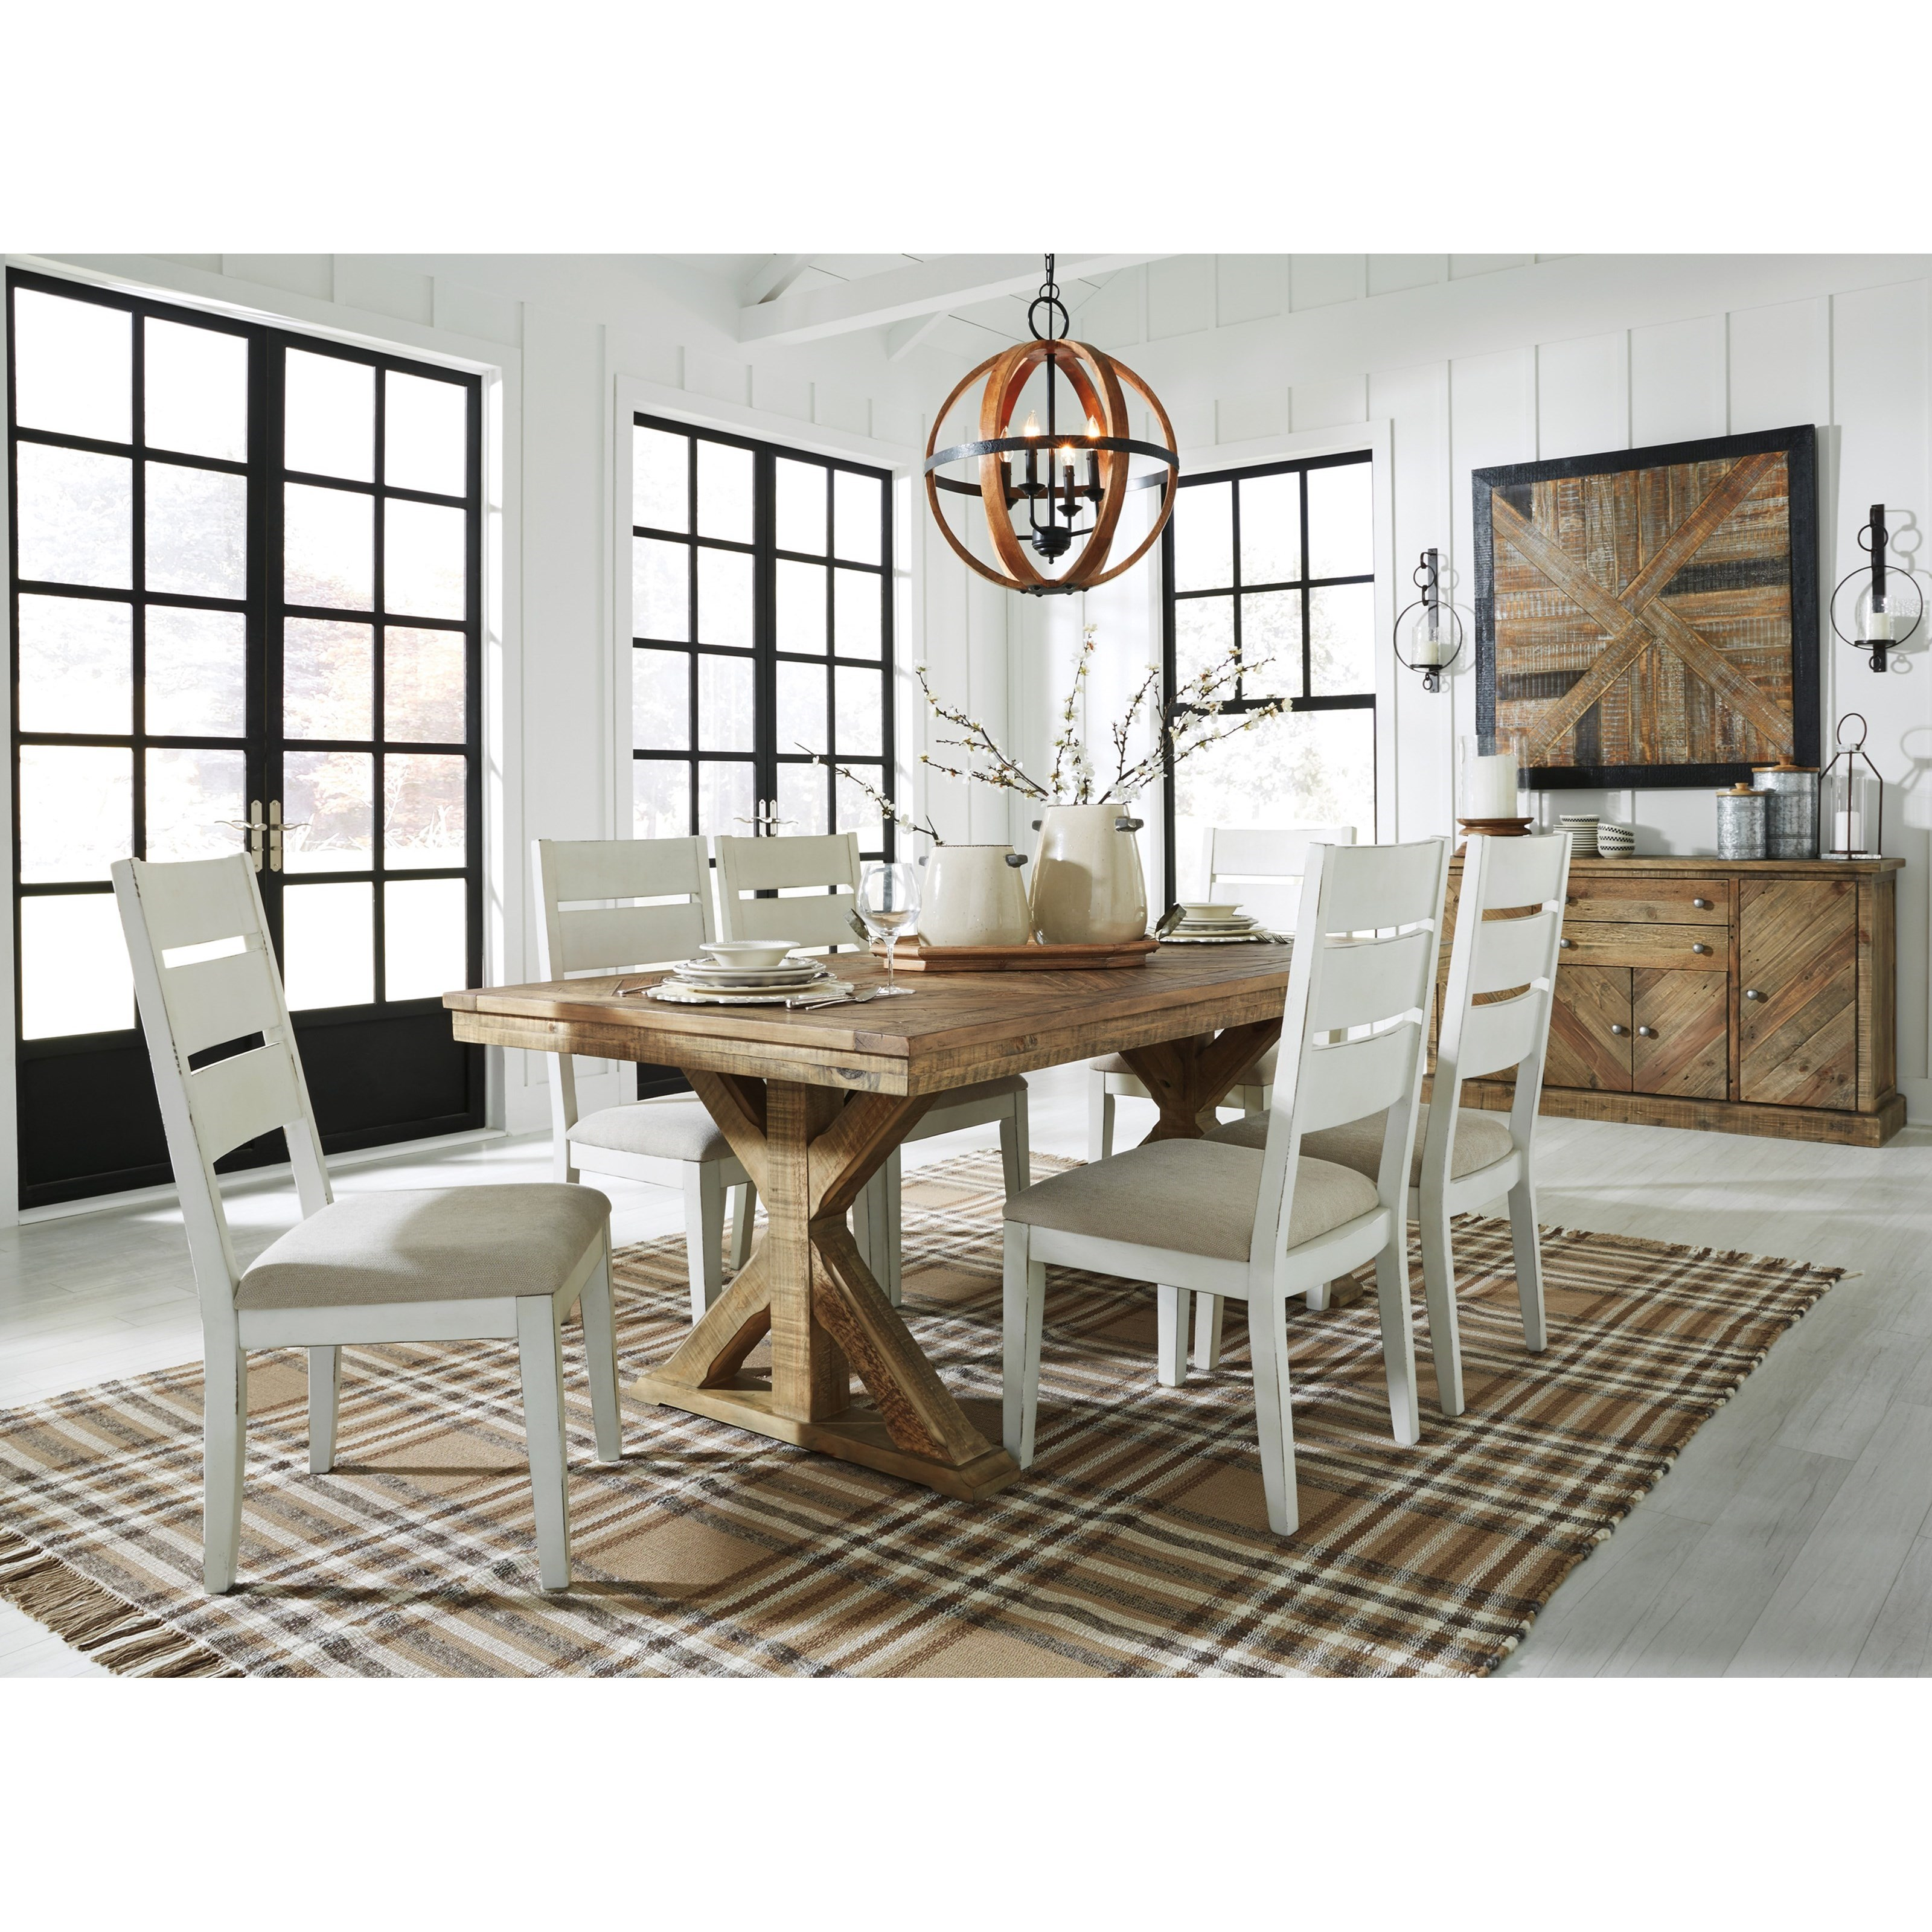 Grindleburg Formal Dining Room Group by Signature Design by Ashley at Northeast Factory Direct